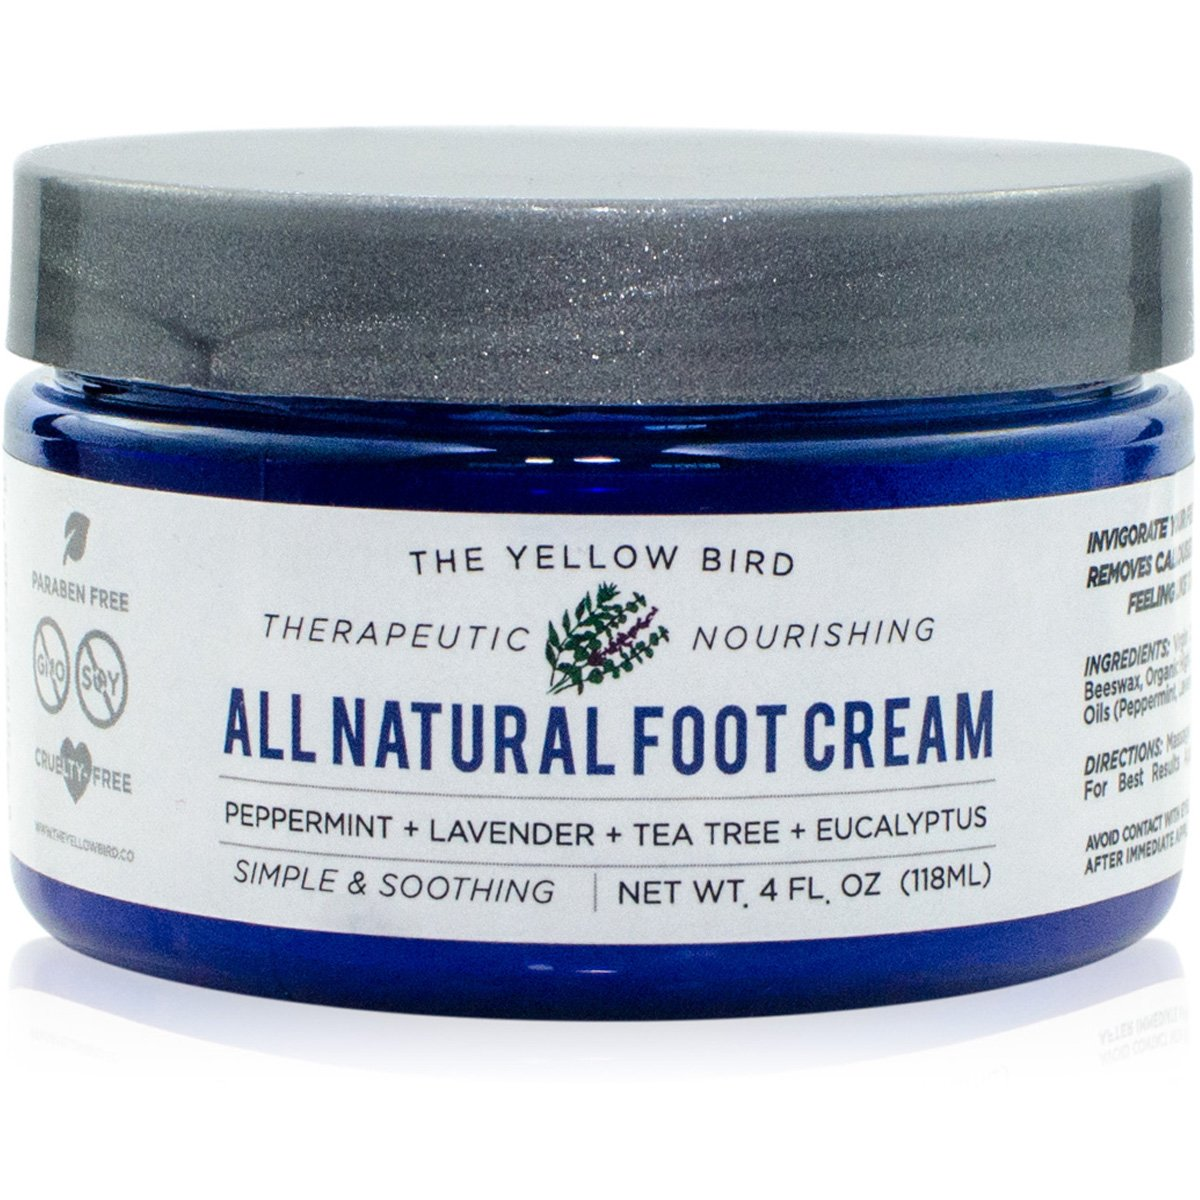 All Natural Antifungal Foot Cream. Moisturizing Organic Relief for Dry Cracked Heels, Callused Feet, Athletes Foot. Best Therapeutic Grade Essential Oils: Peppermint, Lavender, Eucalyptus, Tea Tree. by The Yellow Bird